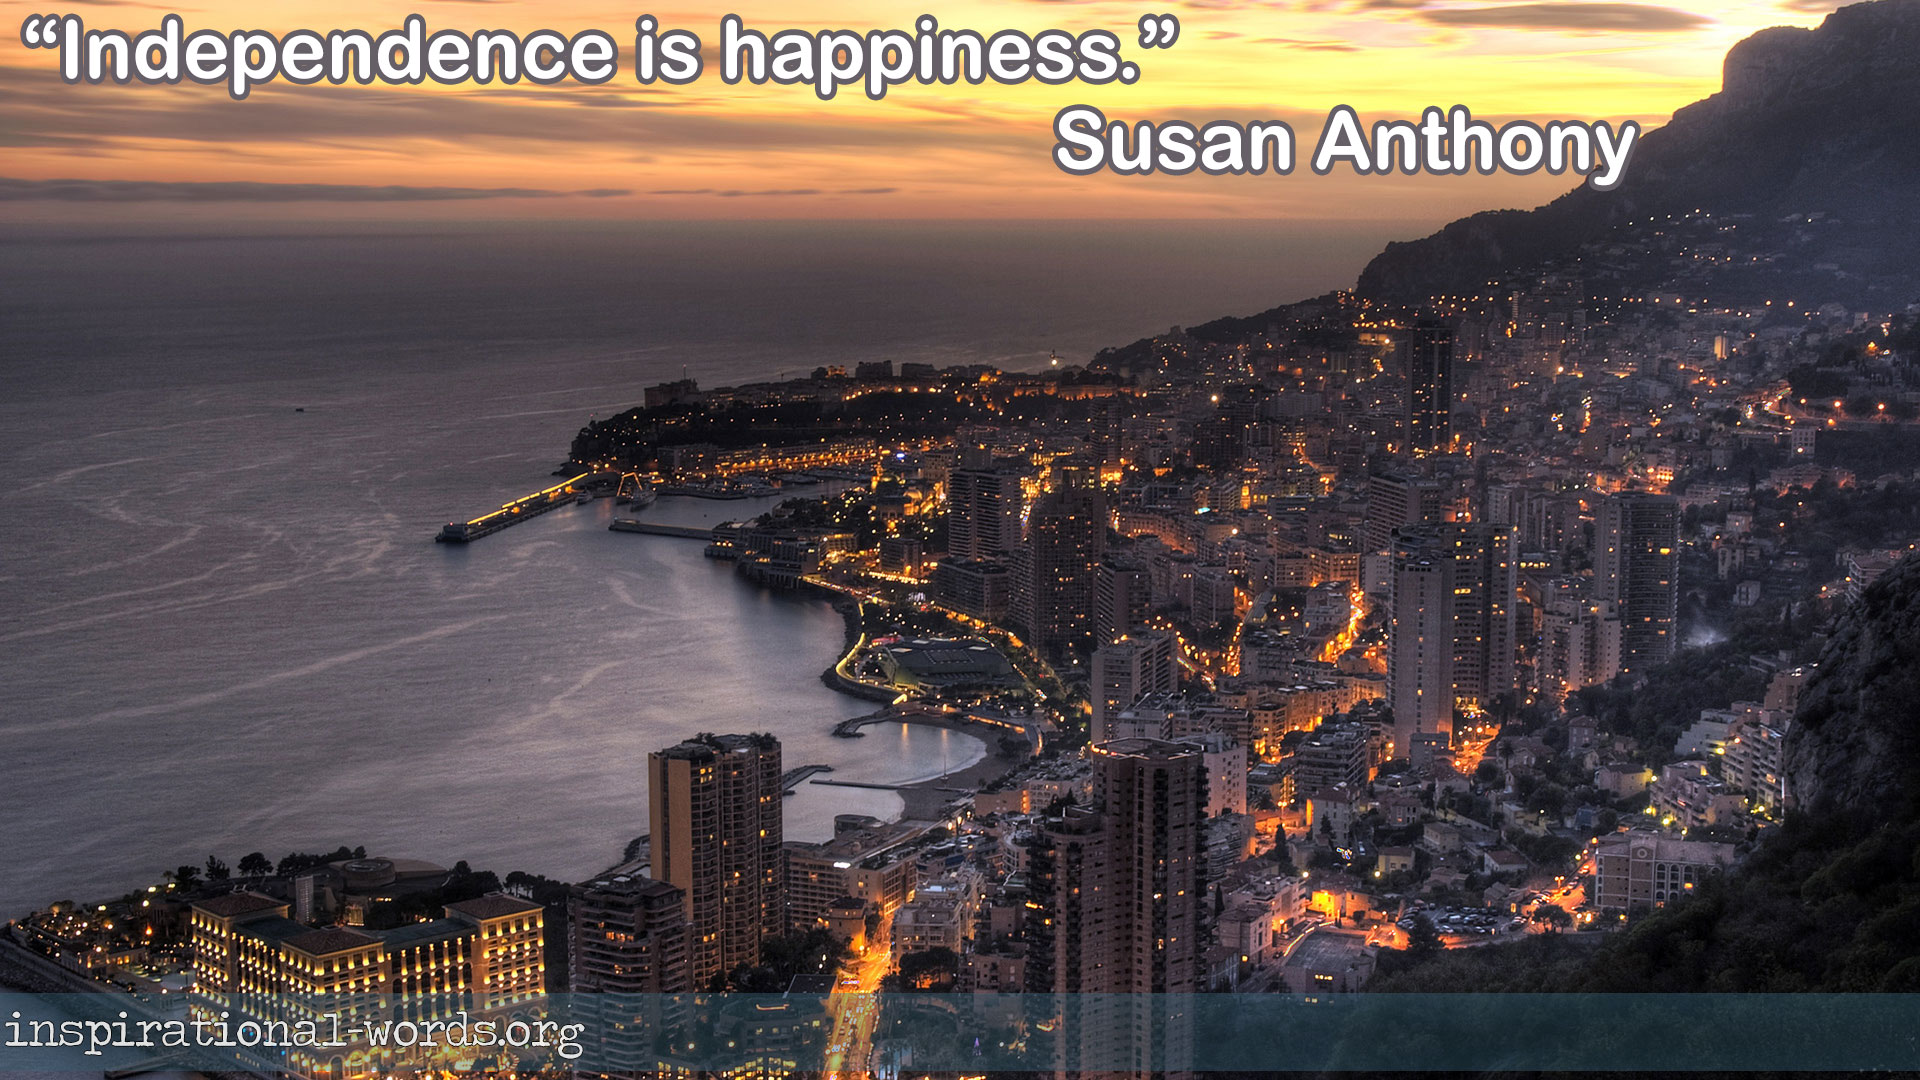 Susan Anthony inspirational wallpaper